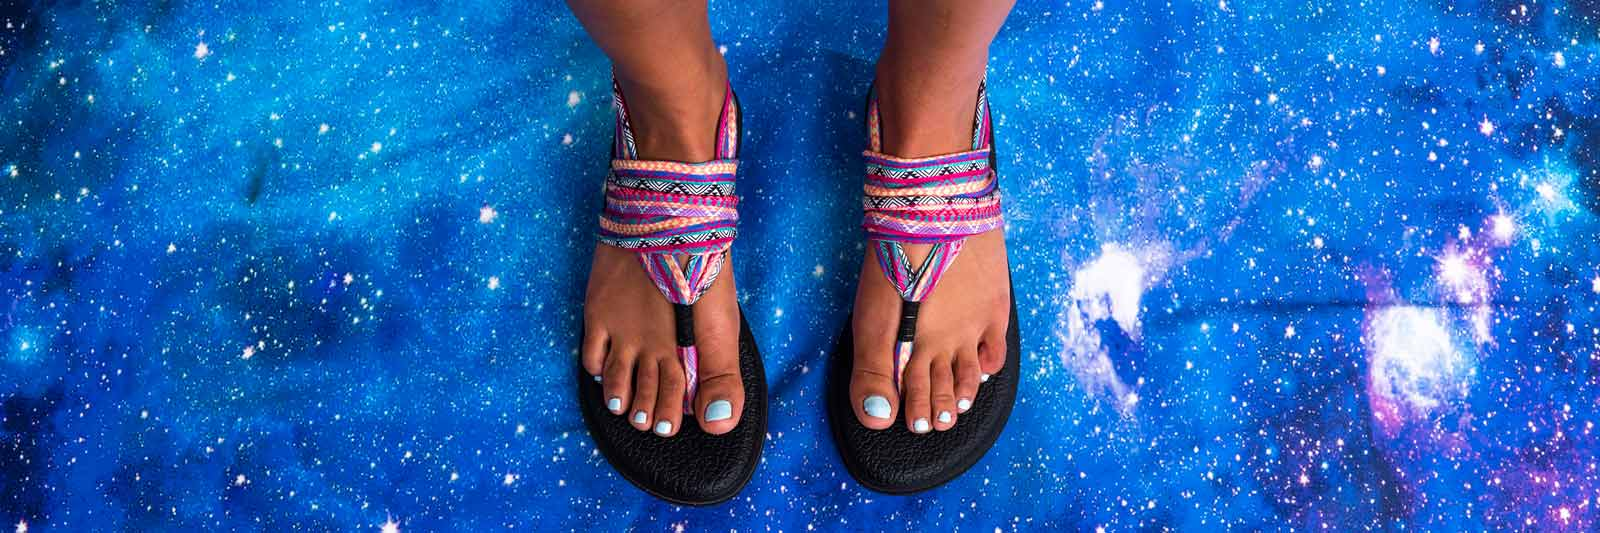 Close up of a woman's feet wearing Sanuk Flip Flops.